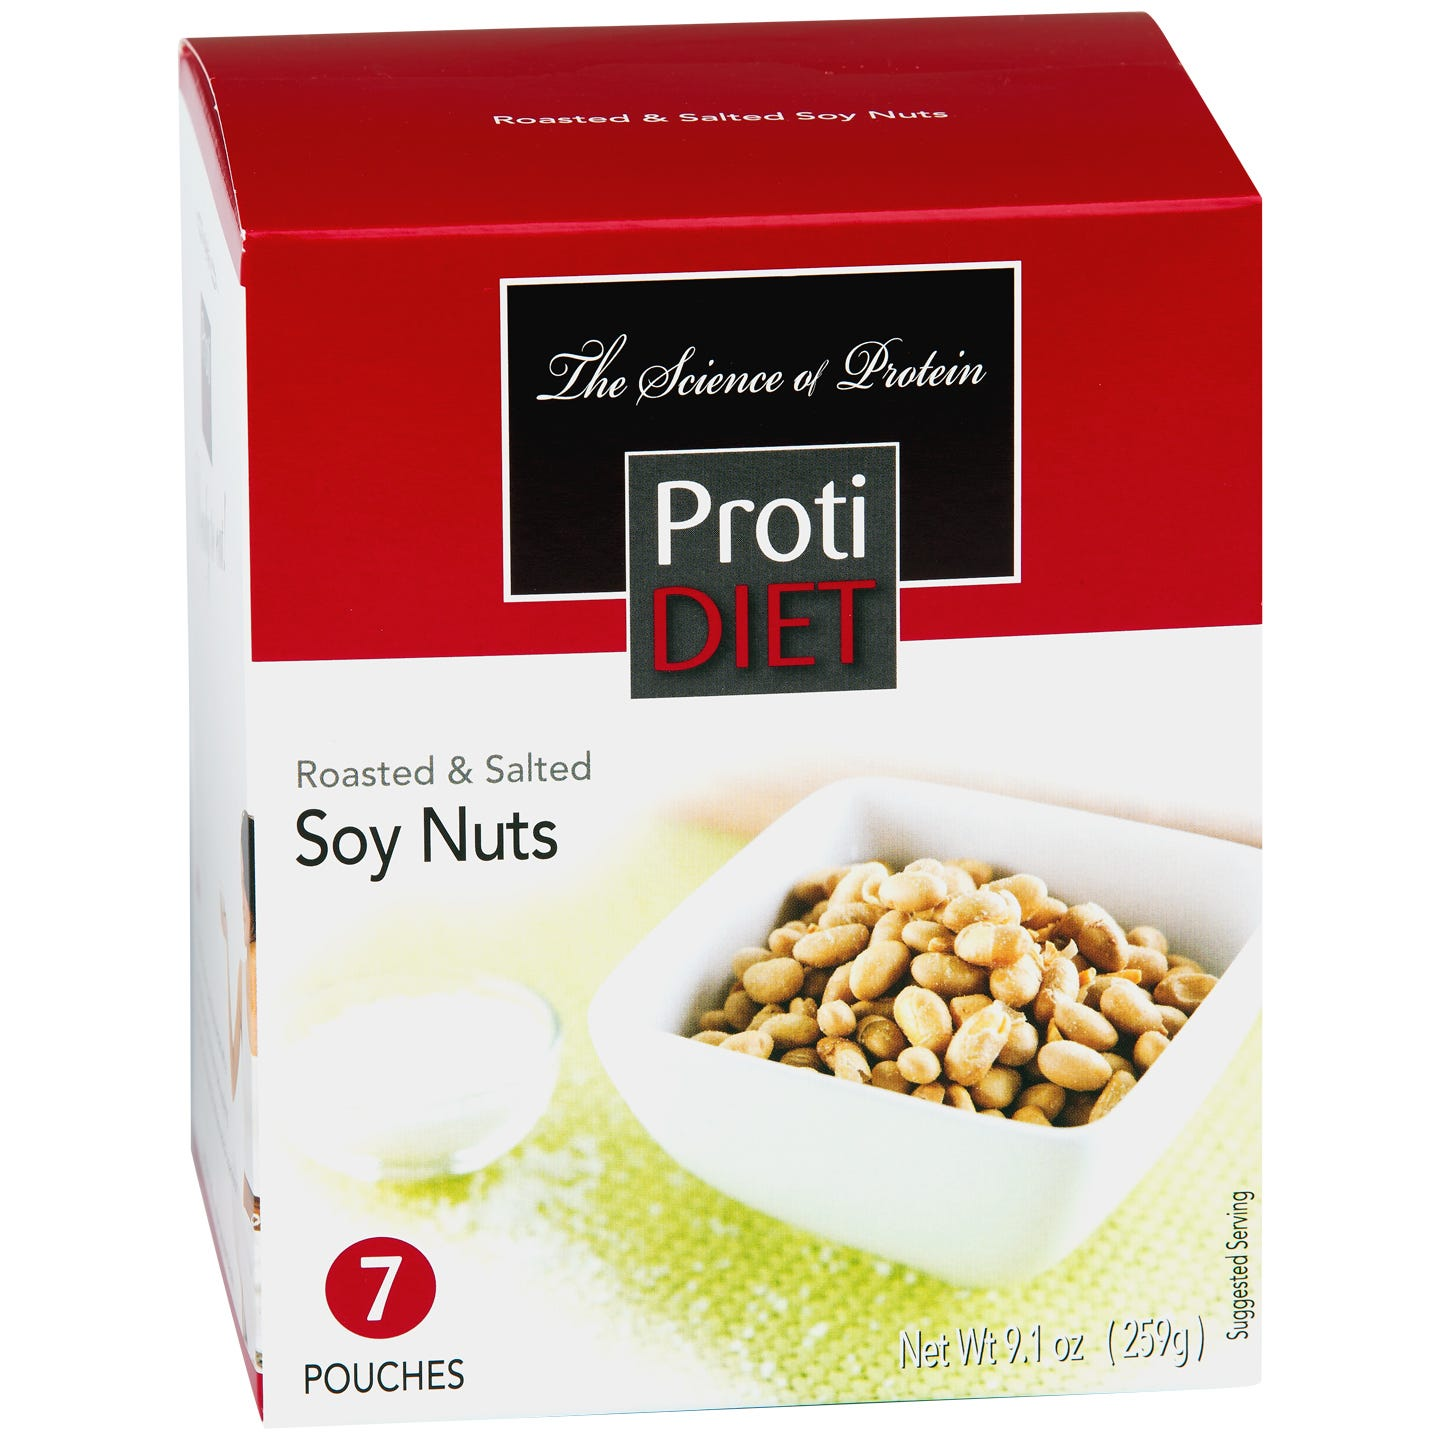 Roasted and Salted Soy Nuts Original (7 Ct) - ProtiDiet